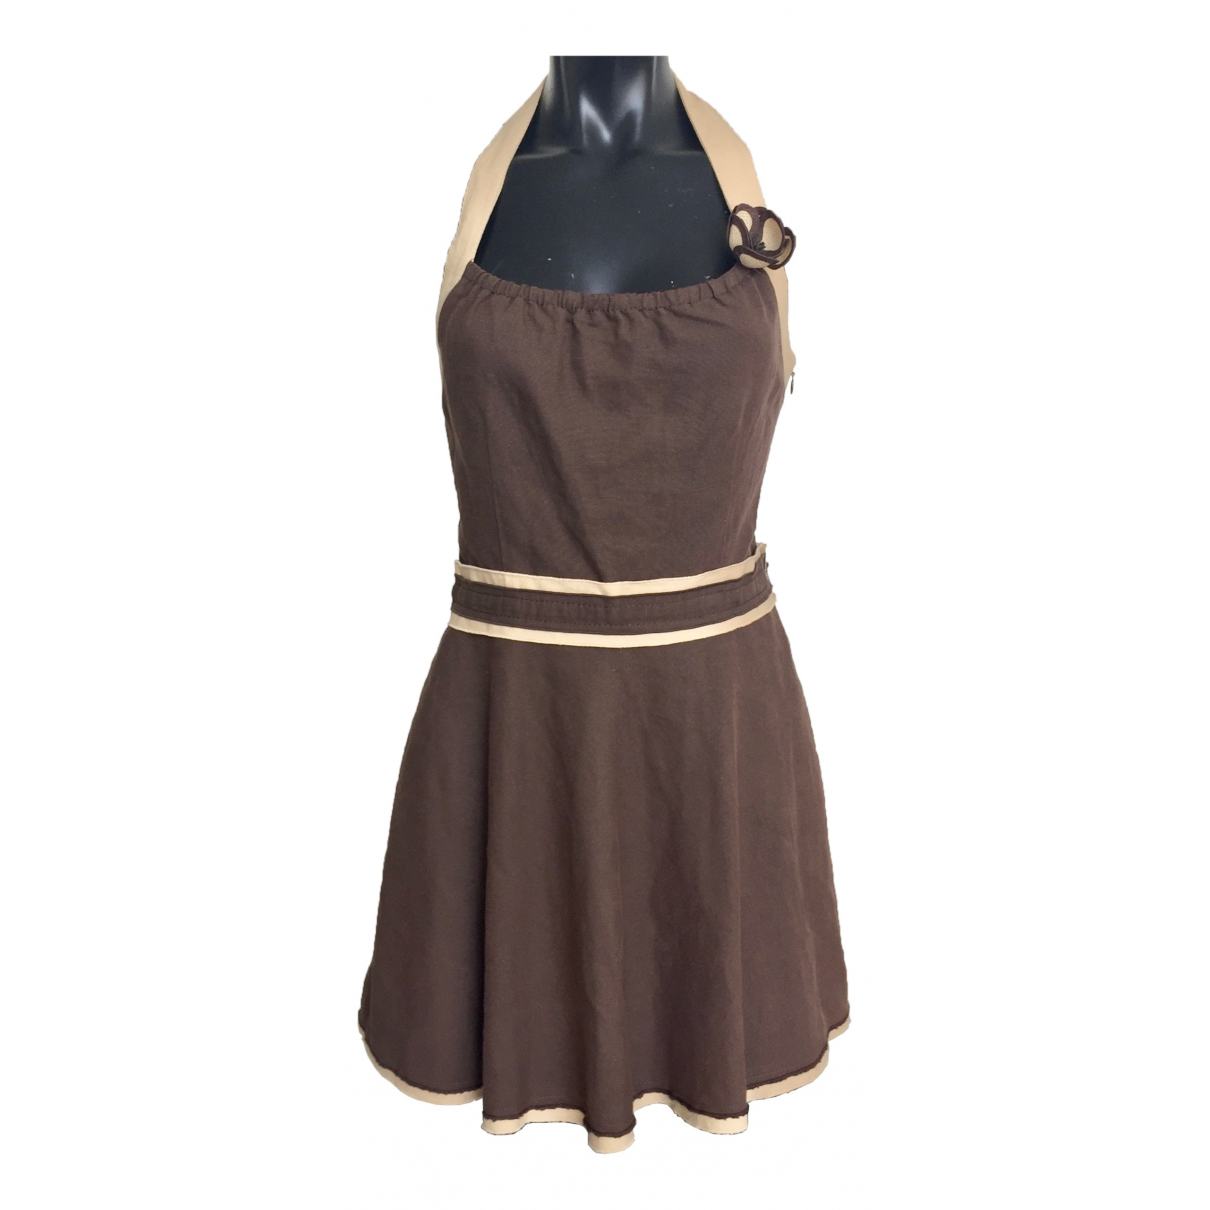 Moschino Cheap And Chic \N Brown Cotton dress for Women 38 FR